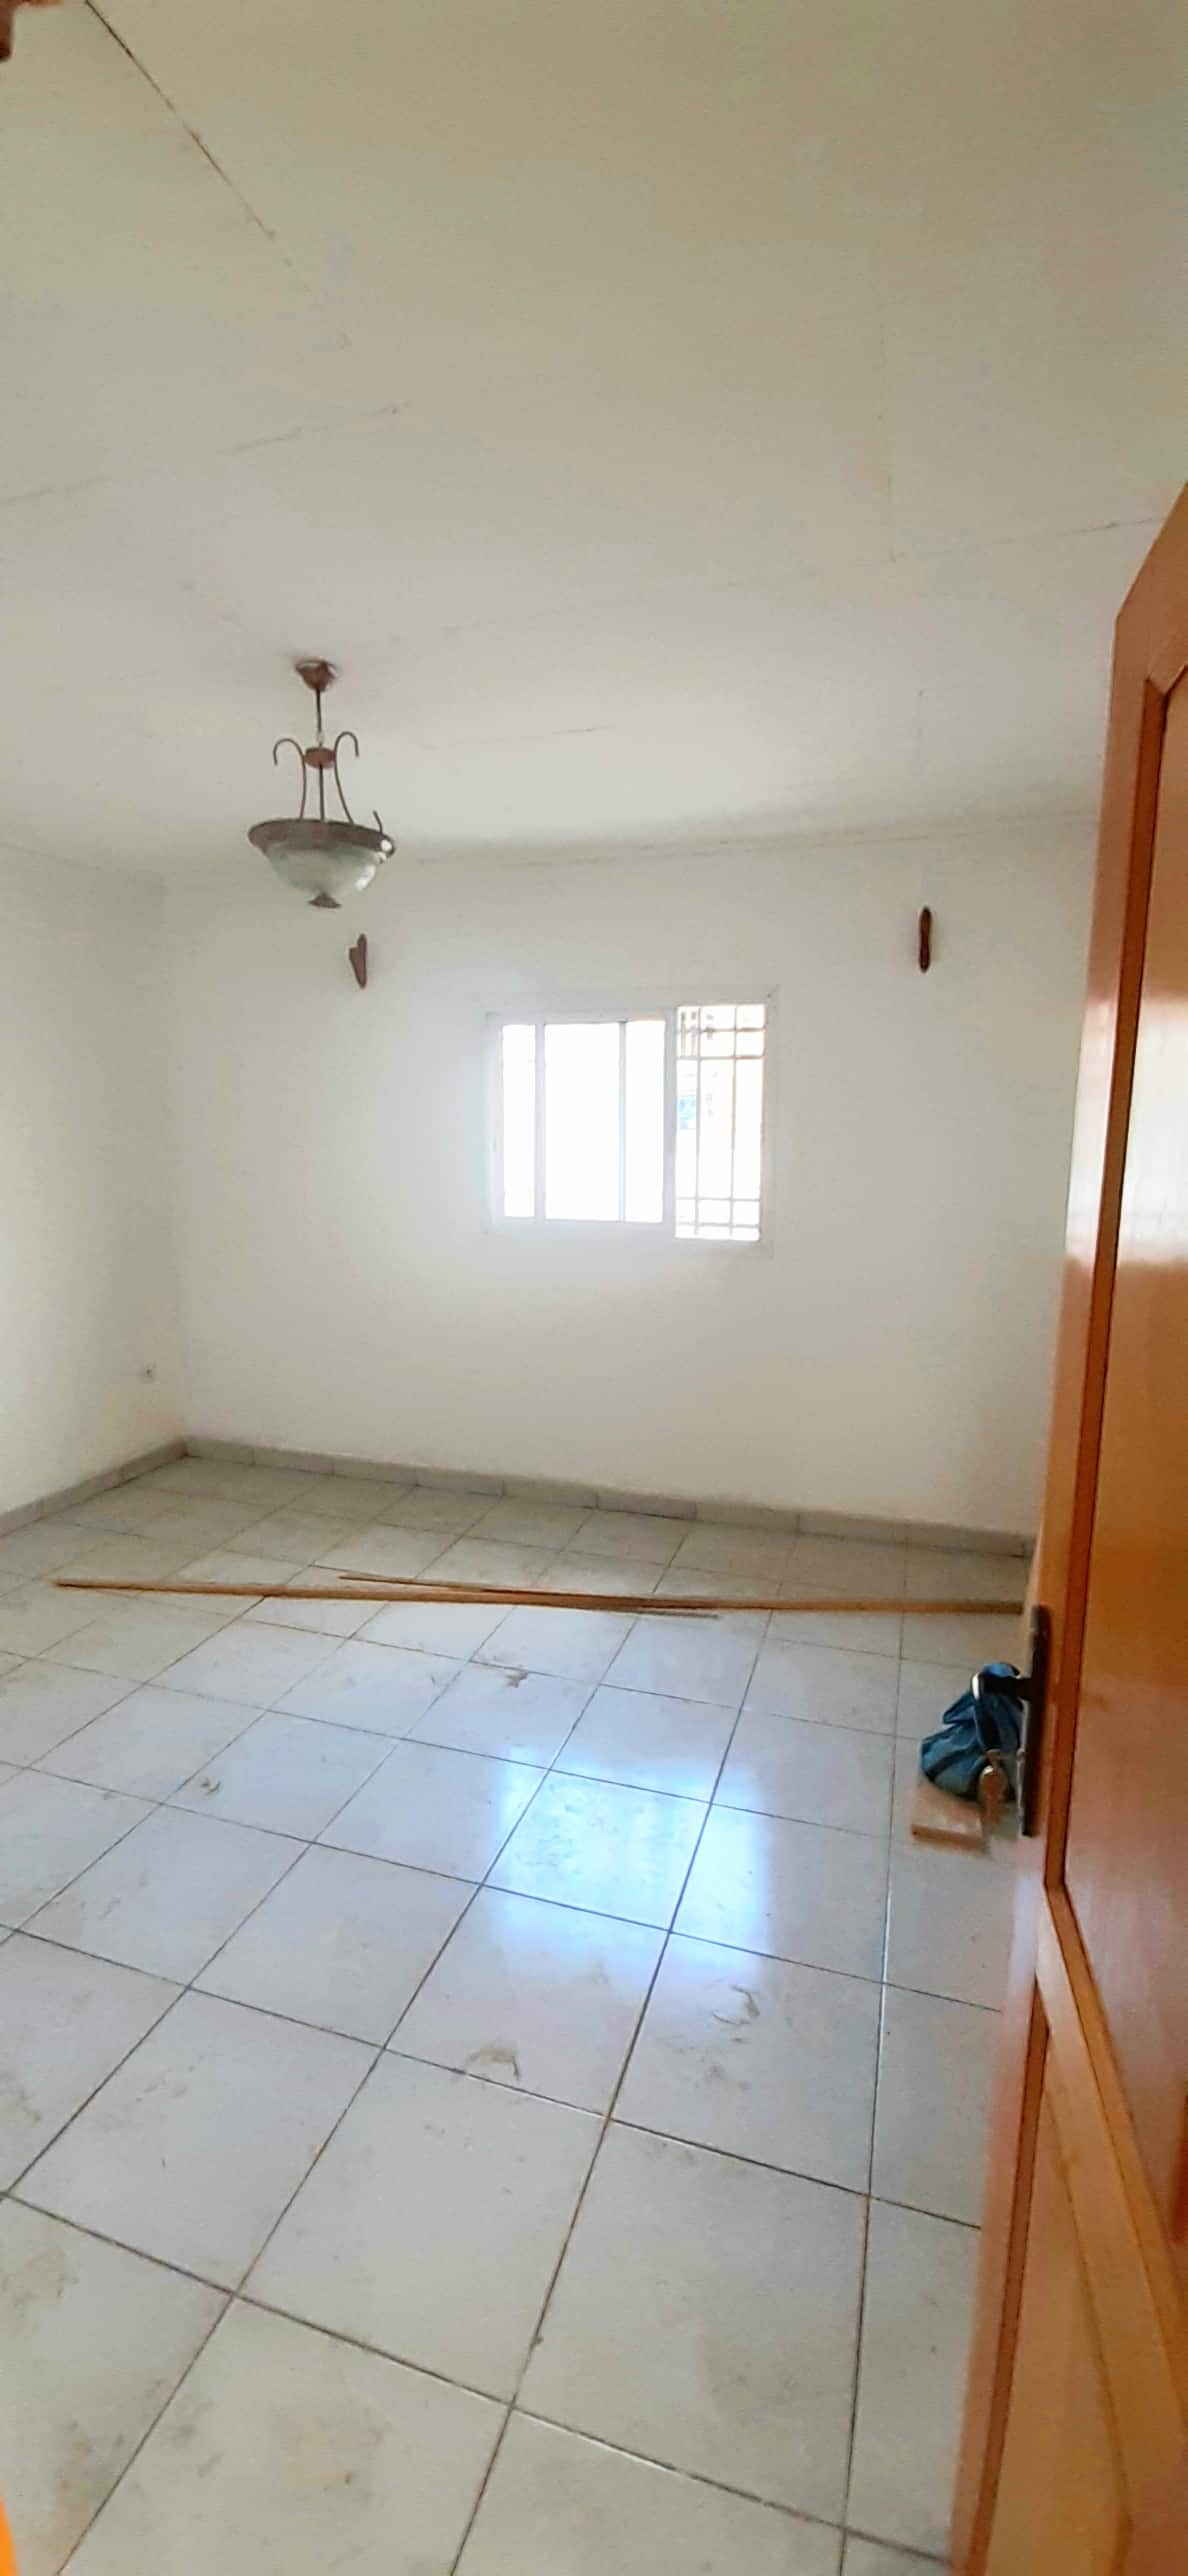 Apartment to rent - Douala, Bepanda, Bepanda mala - 1 living room(s), 1 bedroom(s), 1 bathroom(s) - 70 000 FCFA / month